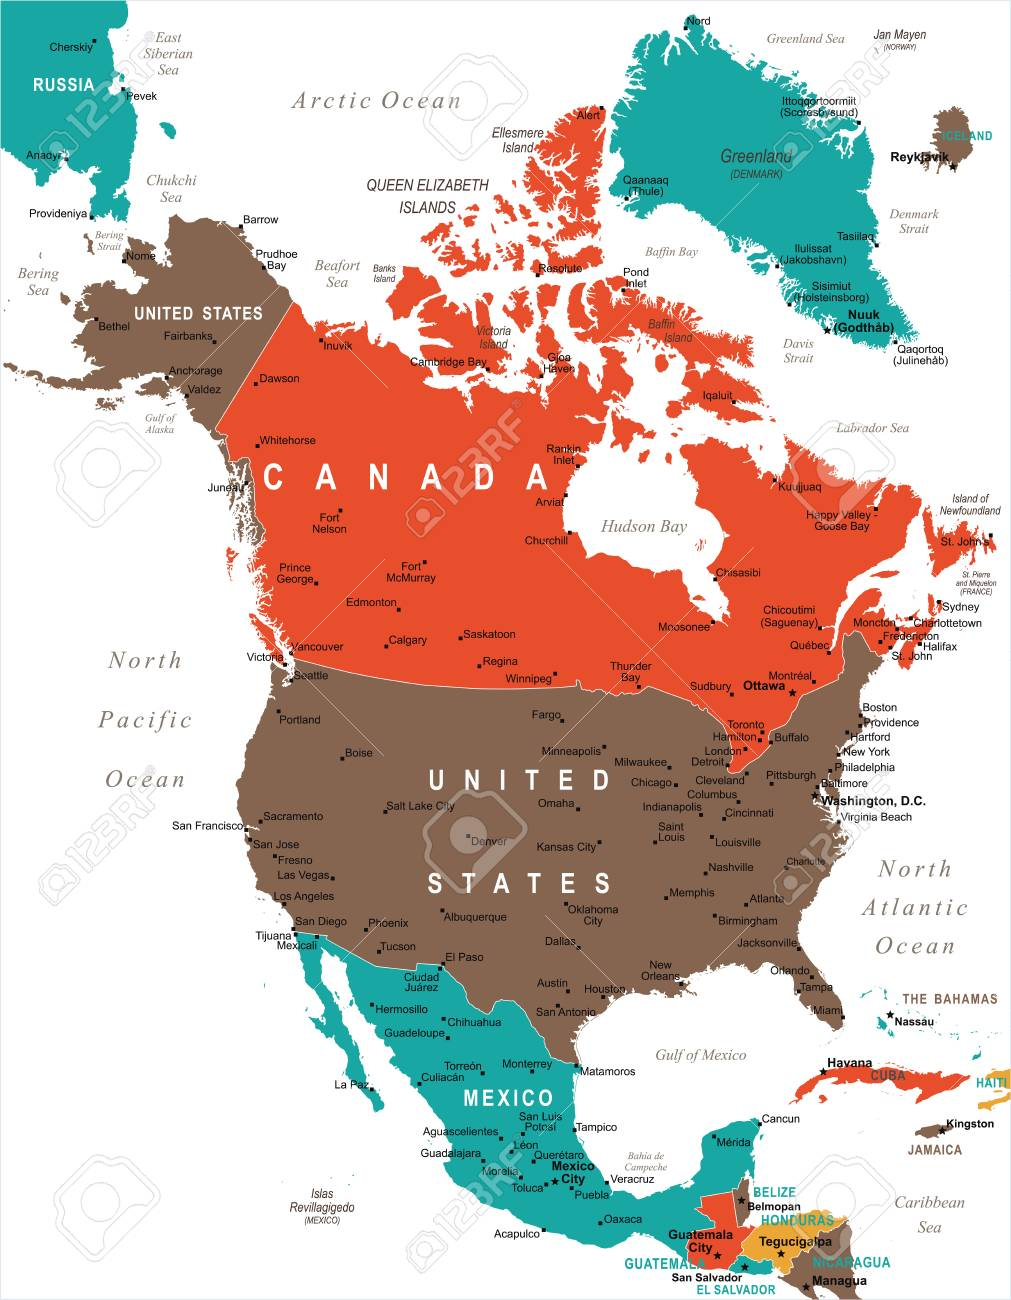 North America Map - Detailed Vector Illustration on road map north america, physical atlas of north america, large map north america, detailed map north carolina, information north america, google maps north america, satellite map north america, current map north america, artistic map north america, history north america, detailed map central america, driving directions north america, places in north america, airports north america, interactive map north america, detailed map latin america, detailed map north dakota, city north america, blank physical map north america, outline map north america,